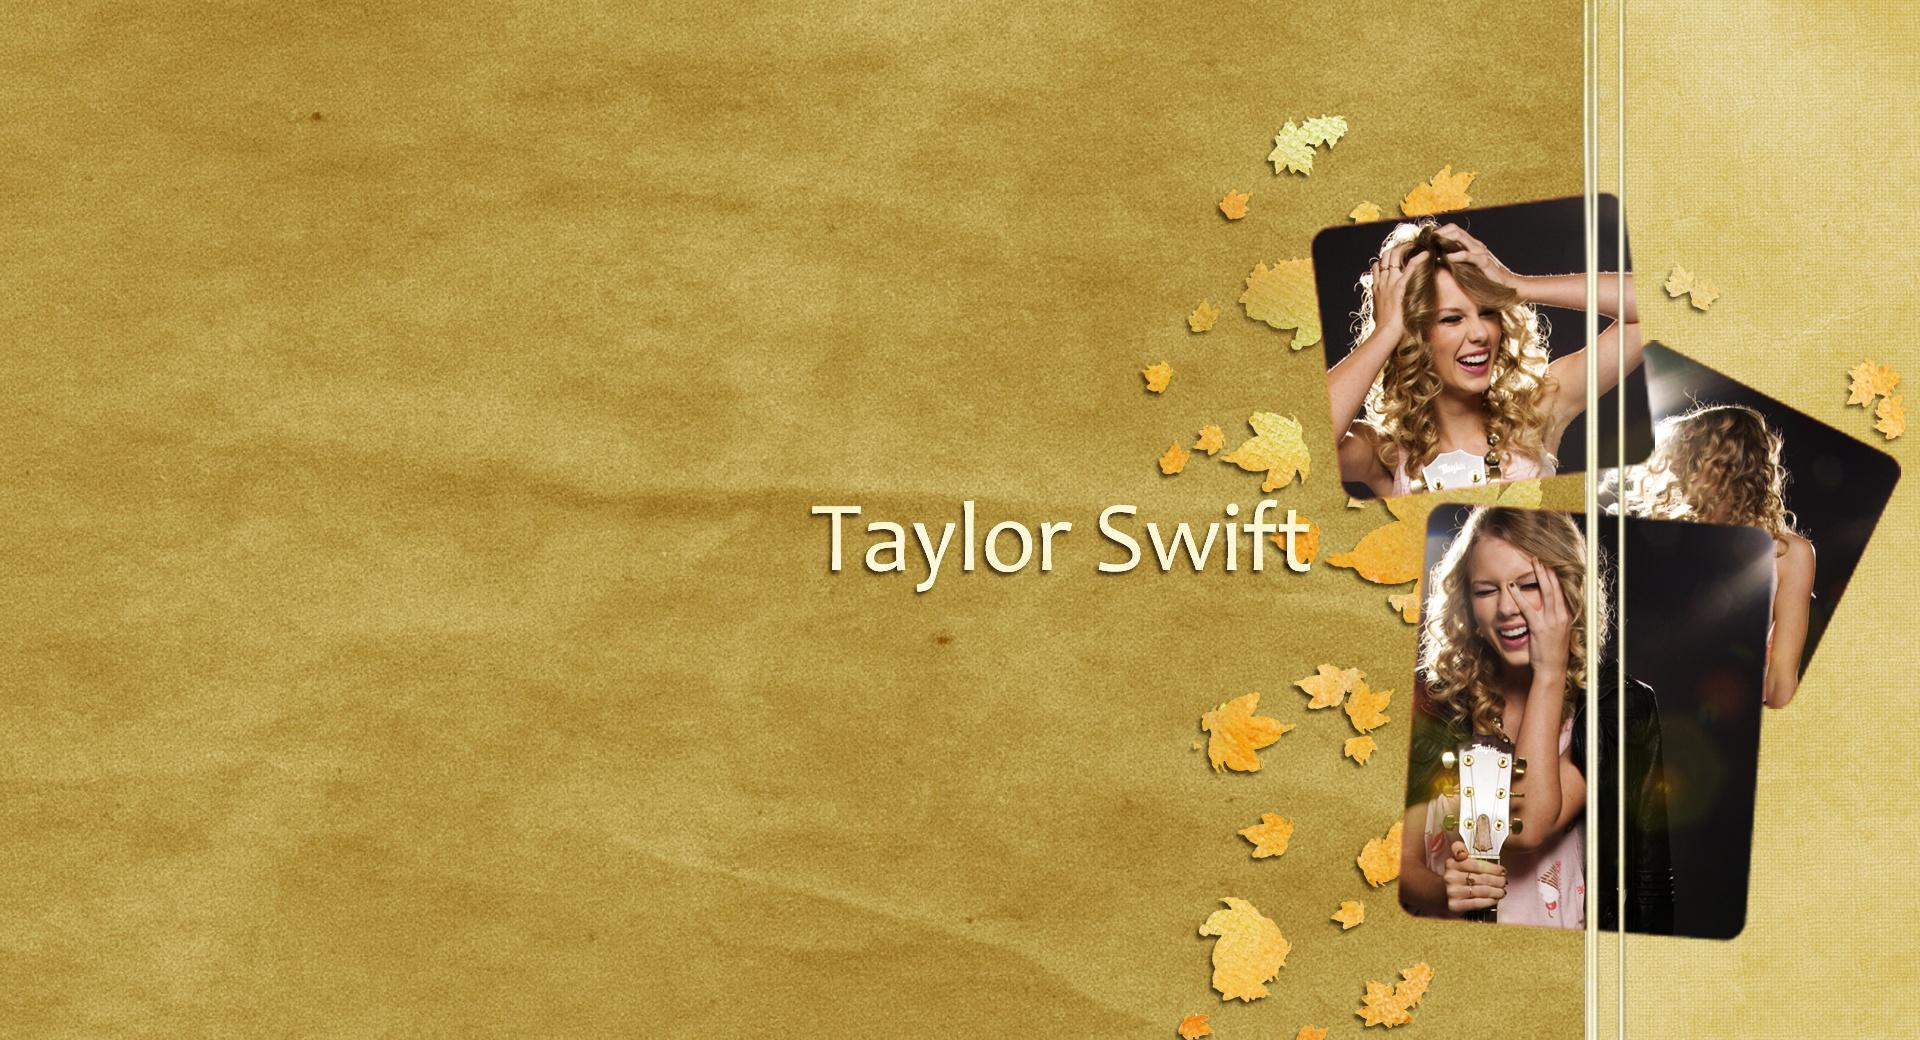 Taylor Swift Excited wallpapers HD quality